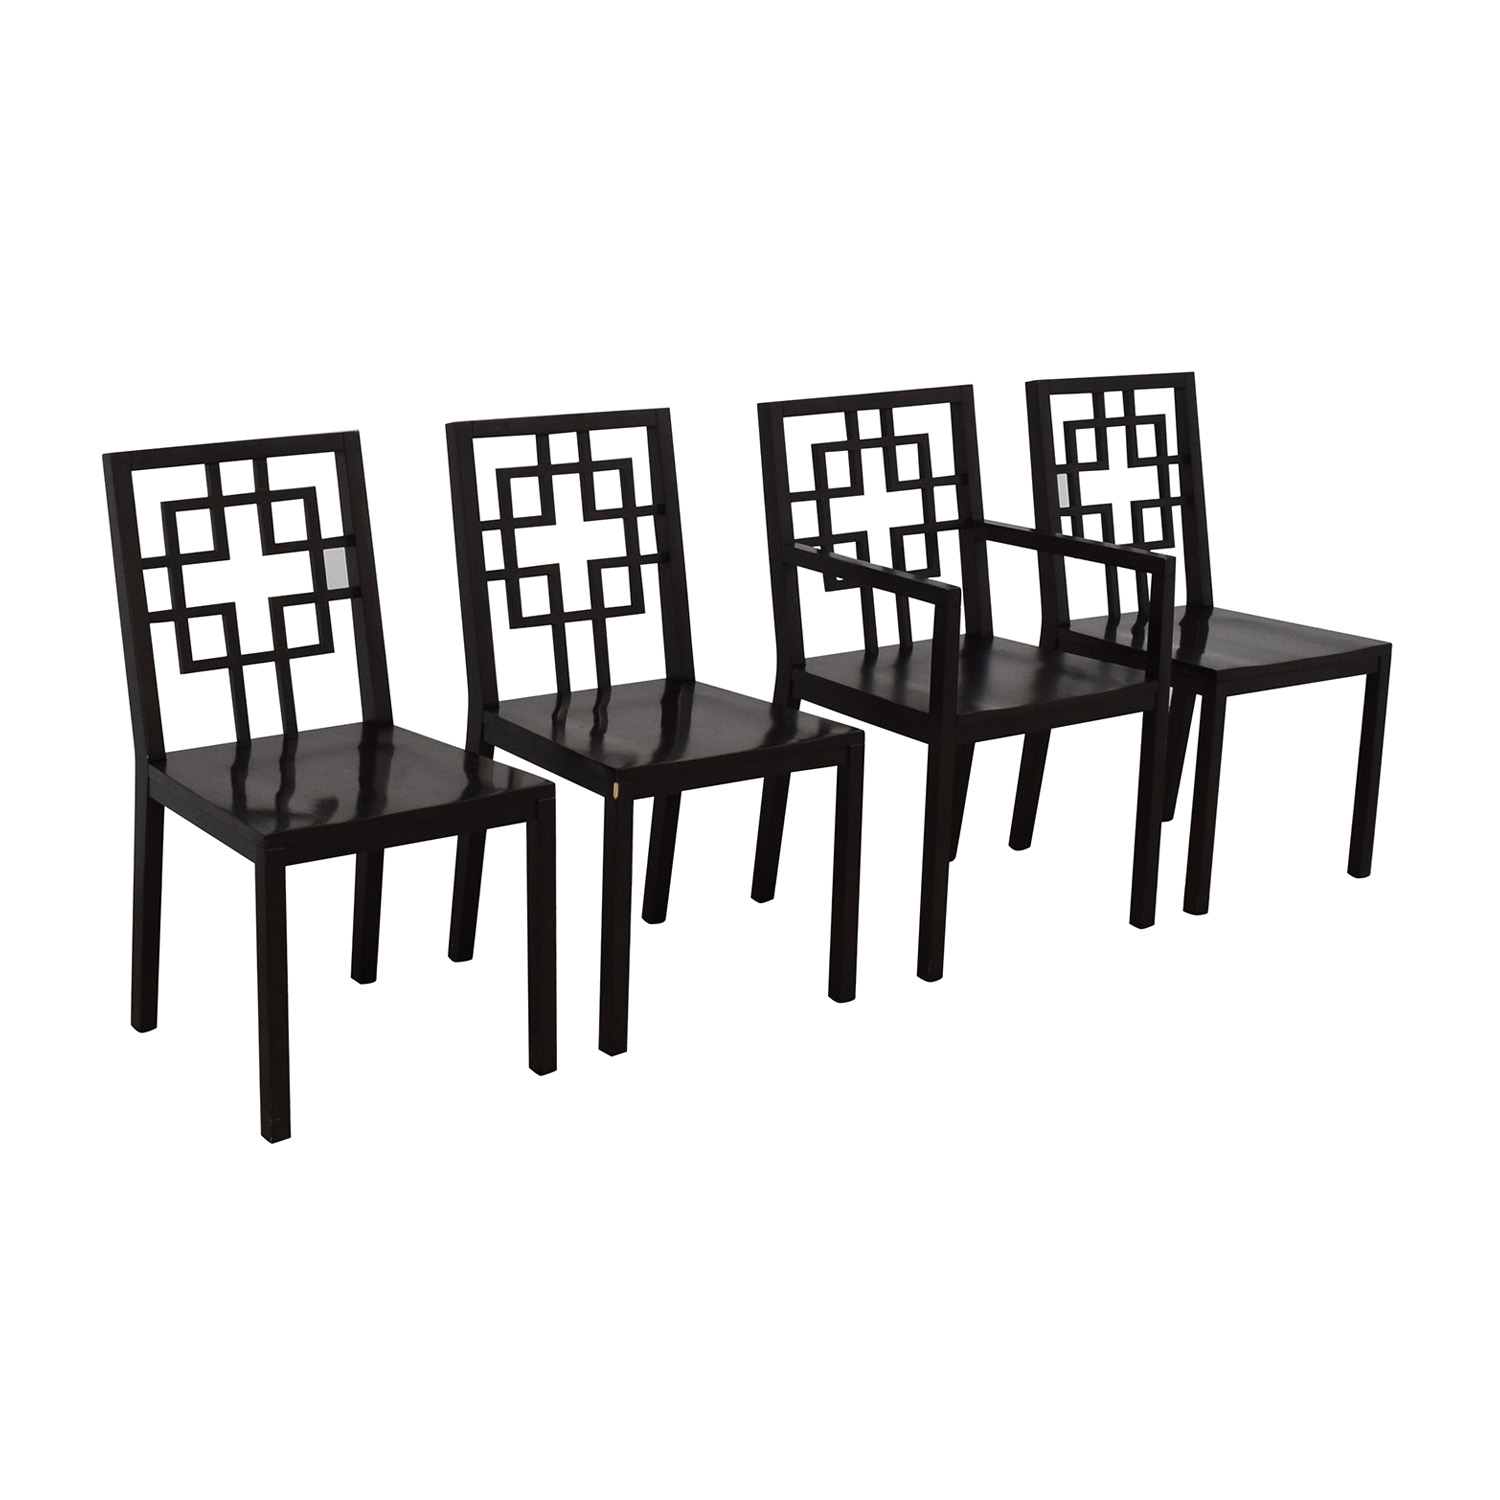 West Elm West Elm Overlapping Squares Chairs nj